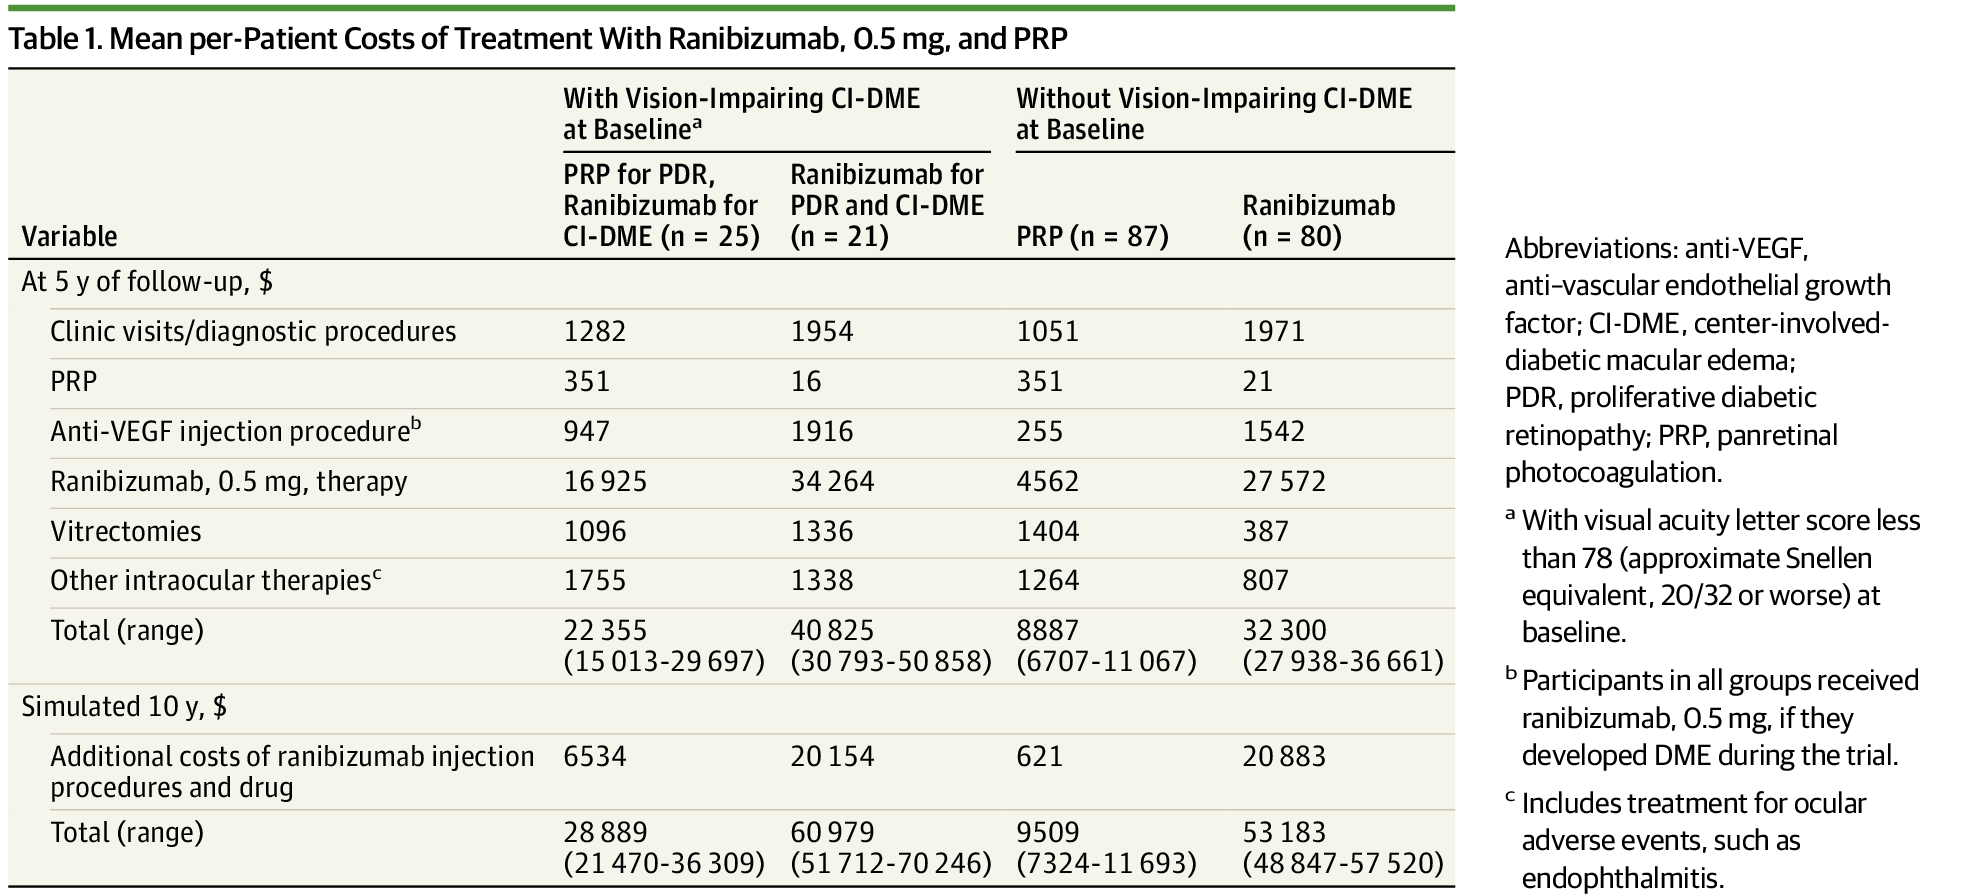 Five-Year Cost-effectiveness of Ranibizumab vs Panretinal Photocoagulation for Proliferative Diabetic Retinopathy